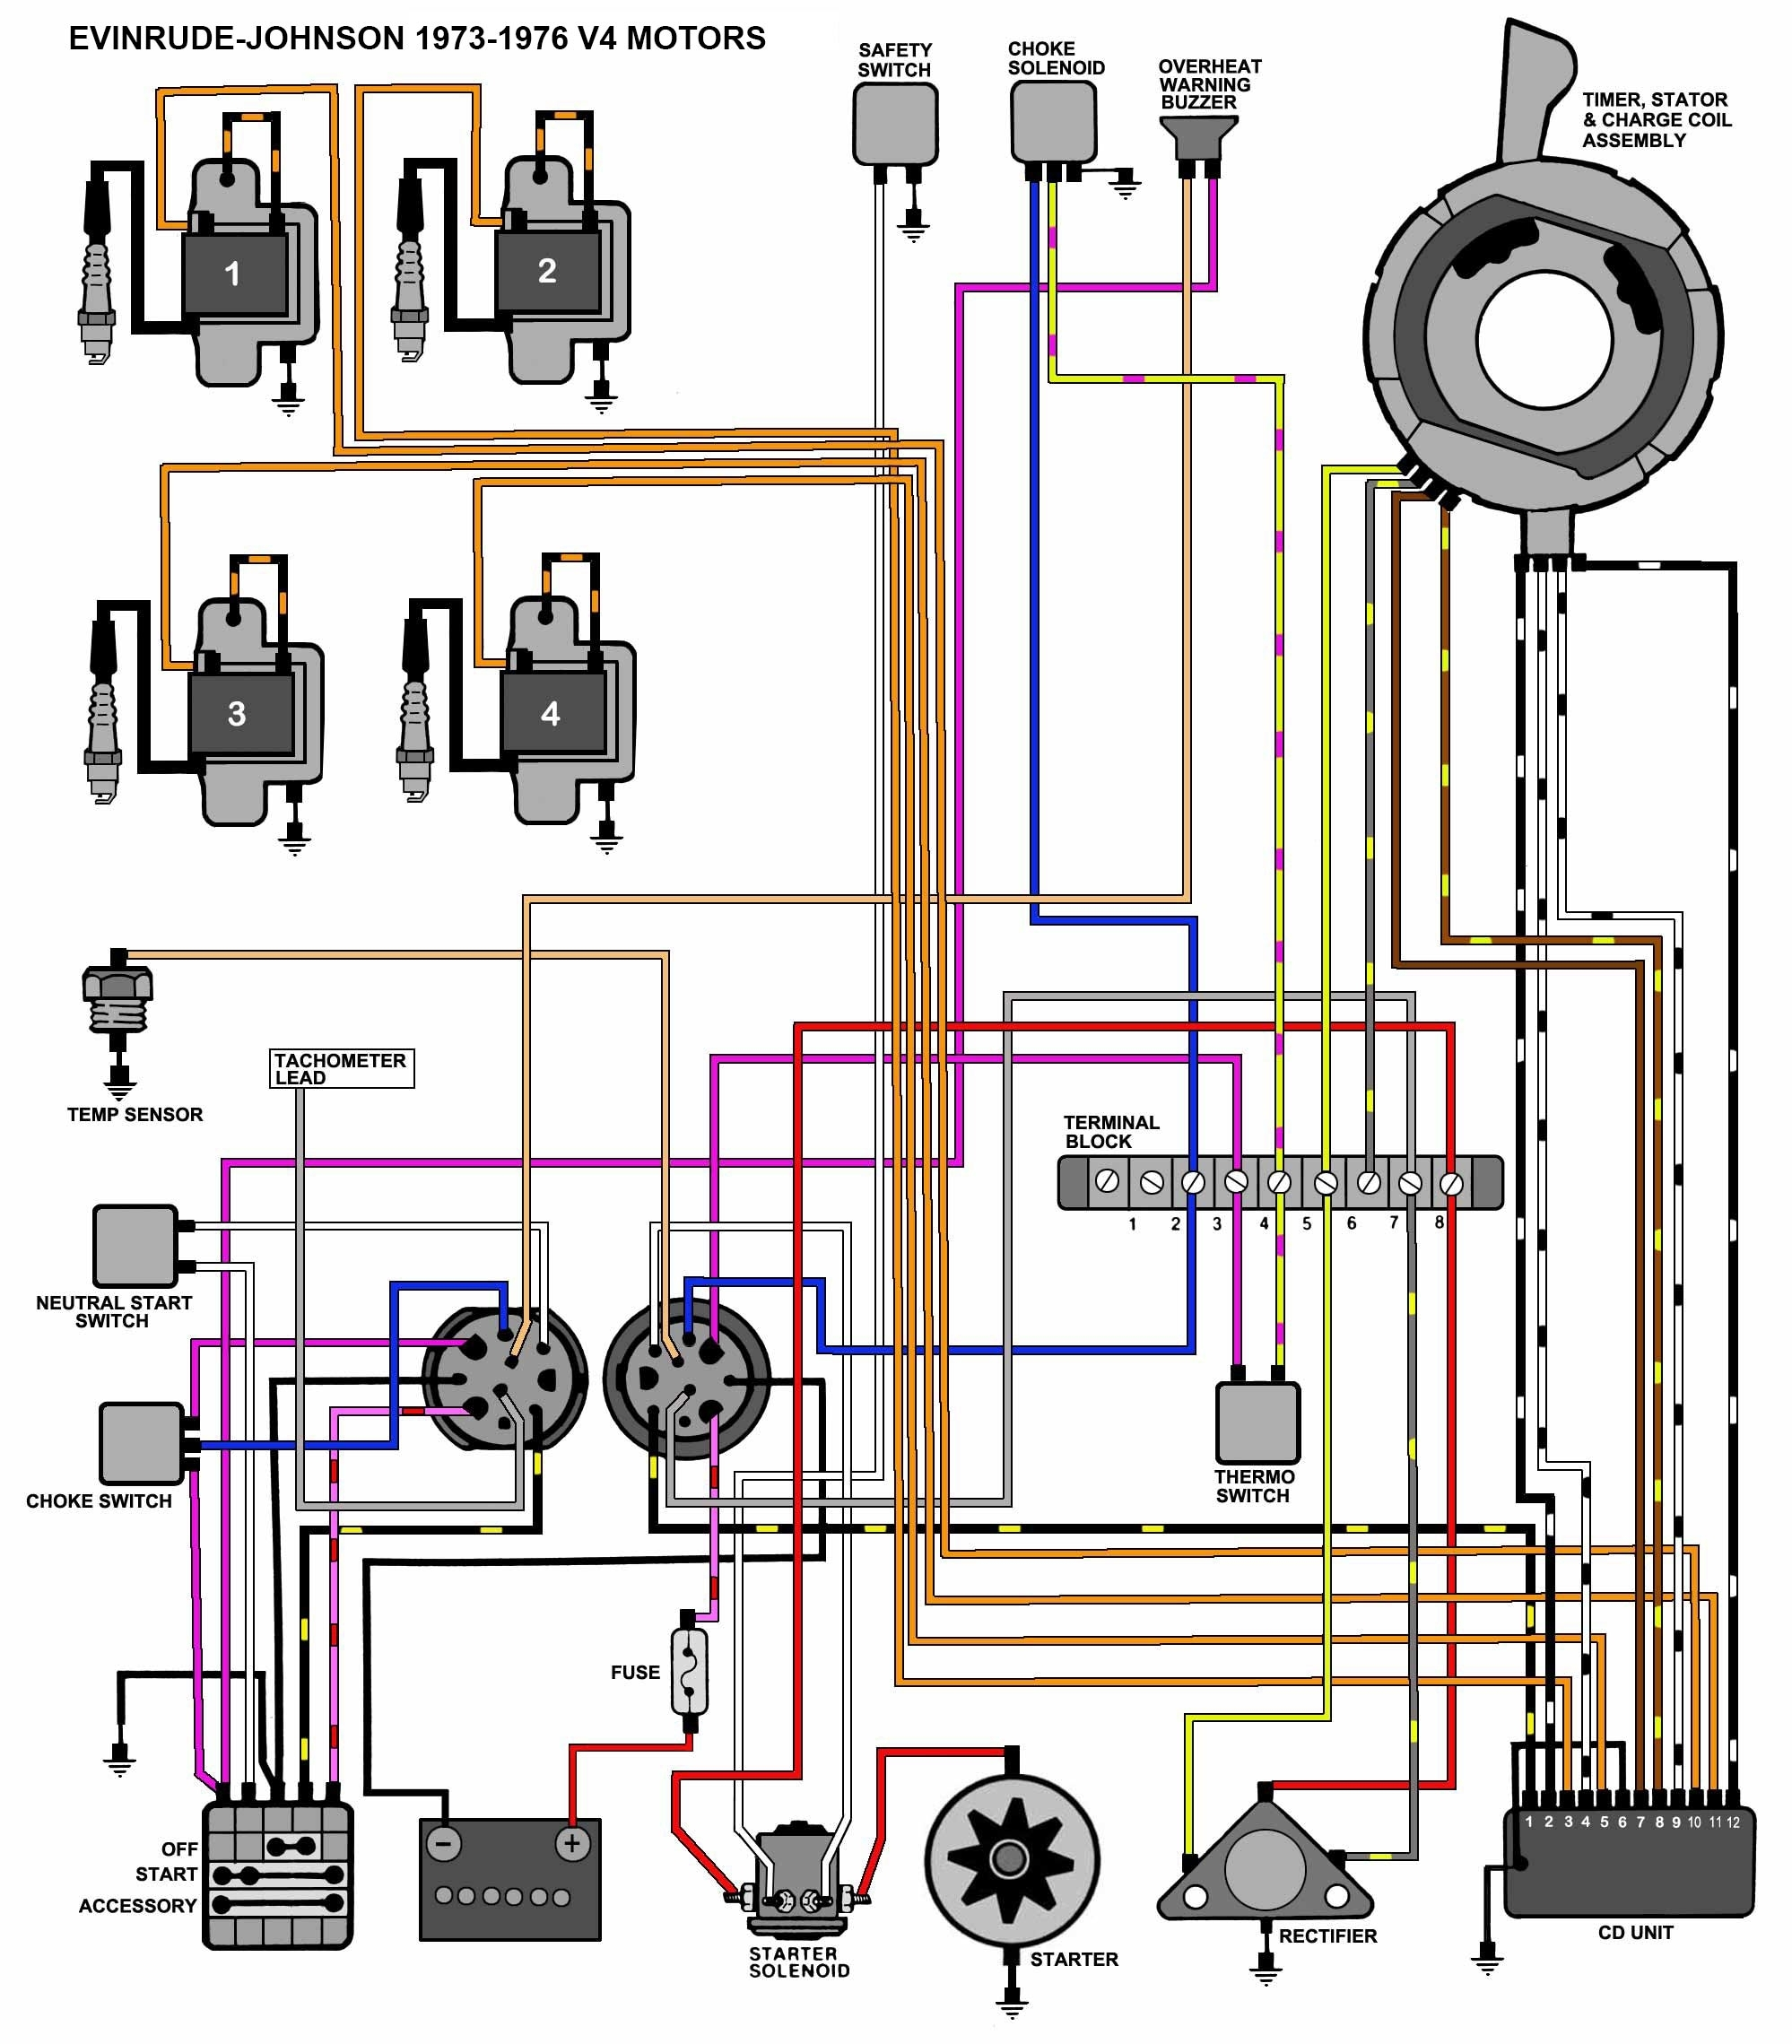 evinrude ignition switch wiring diagram with 1969 omc 55 wiring throughout 70 hp evinrude wiring diagram?resize\\=665%2C759\\&ssl\\=1 100 [ 88 mercury 150 wiring diagram ] i have a 40 hp 1977 with Trigonometry Unit Circle Diagram Radians at honlapkeszites.co